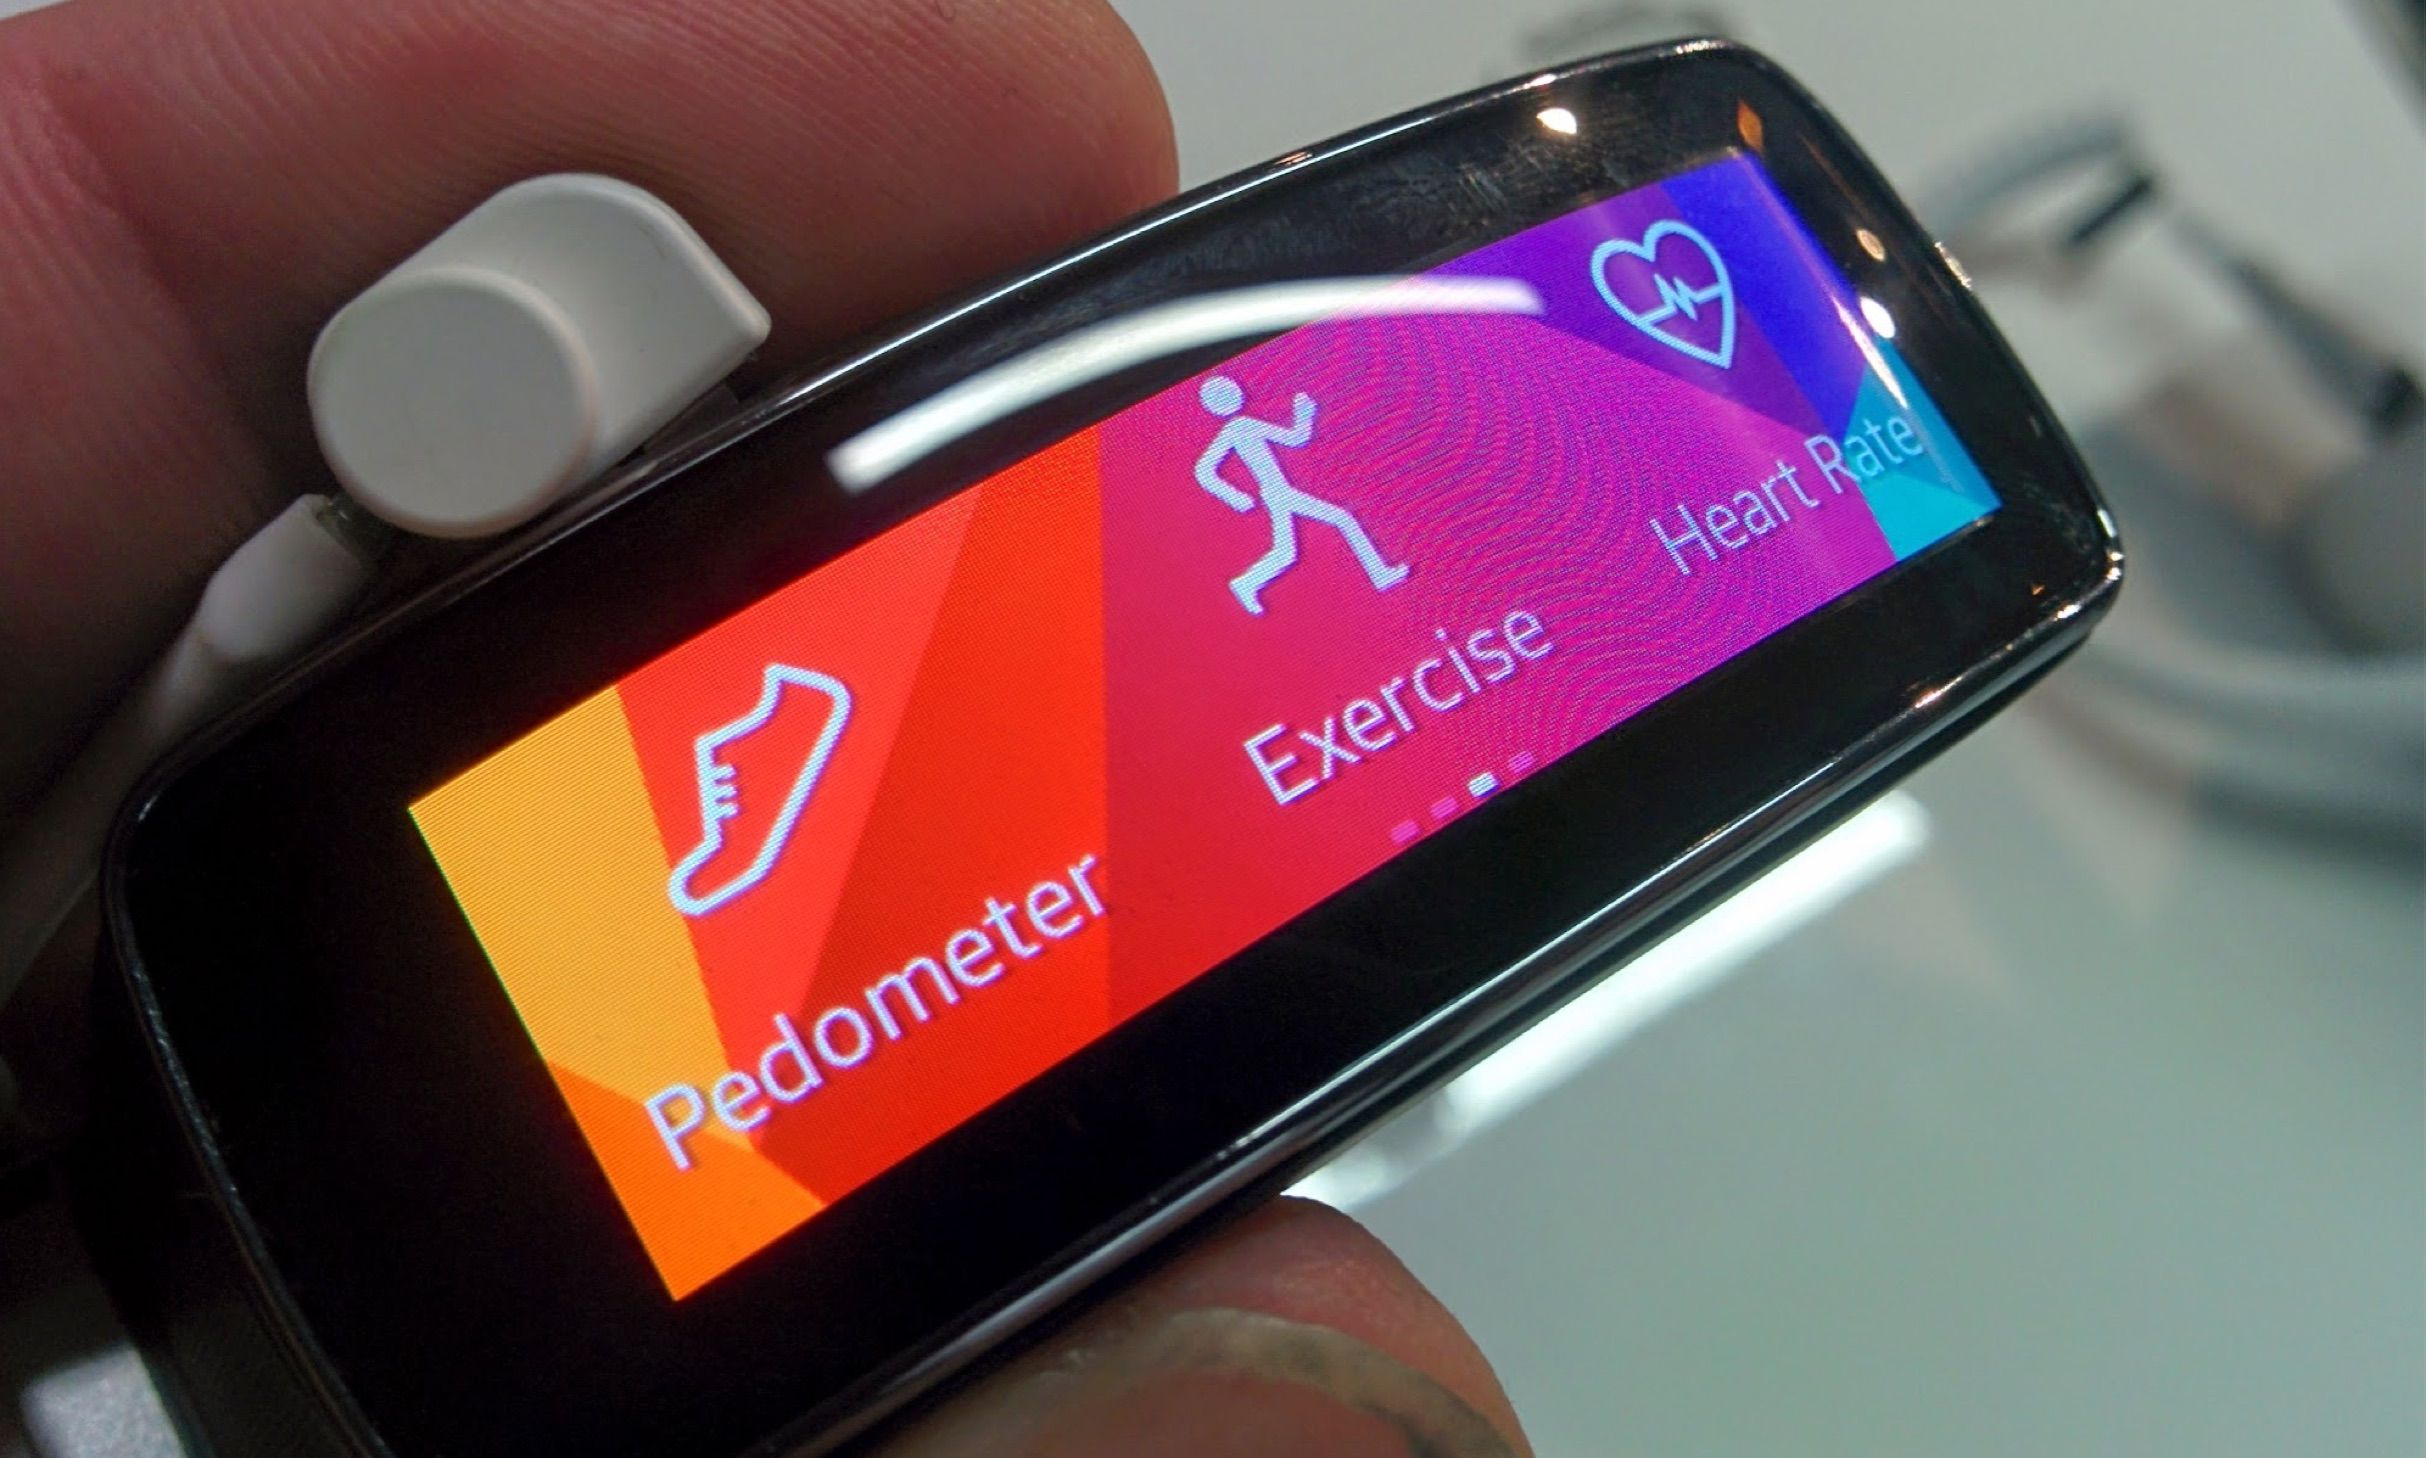 Why Health And Fitness Are The Only Wearables That Matter - ARC